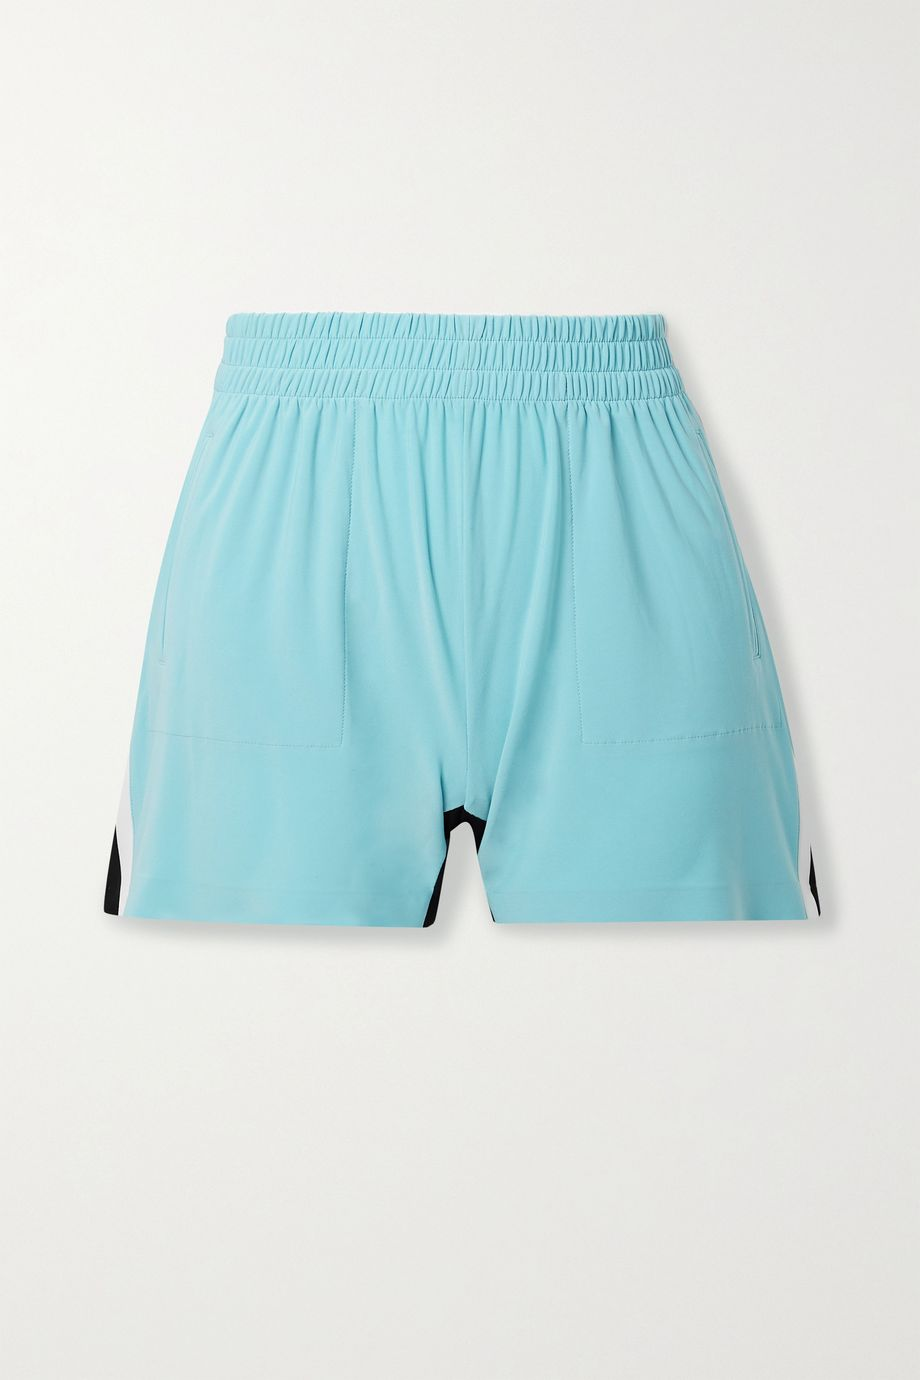 Norma Kamali Color-block stretch-jersey shorts